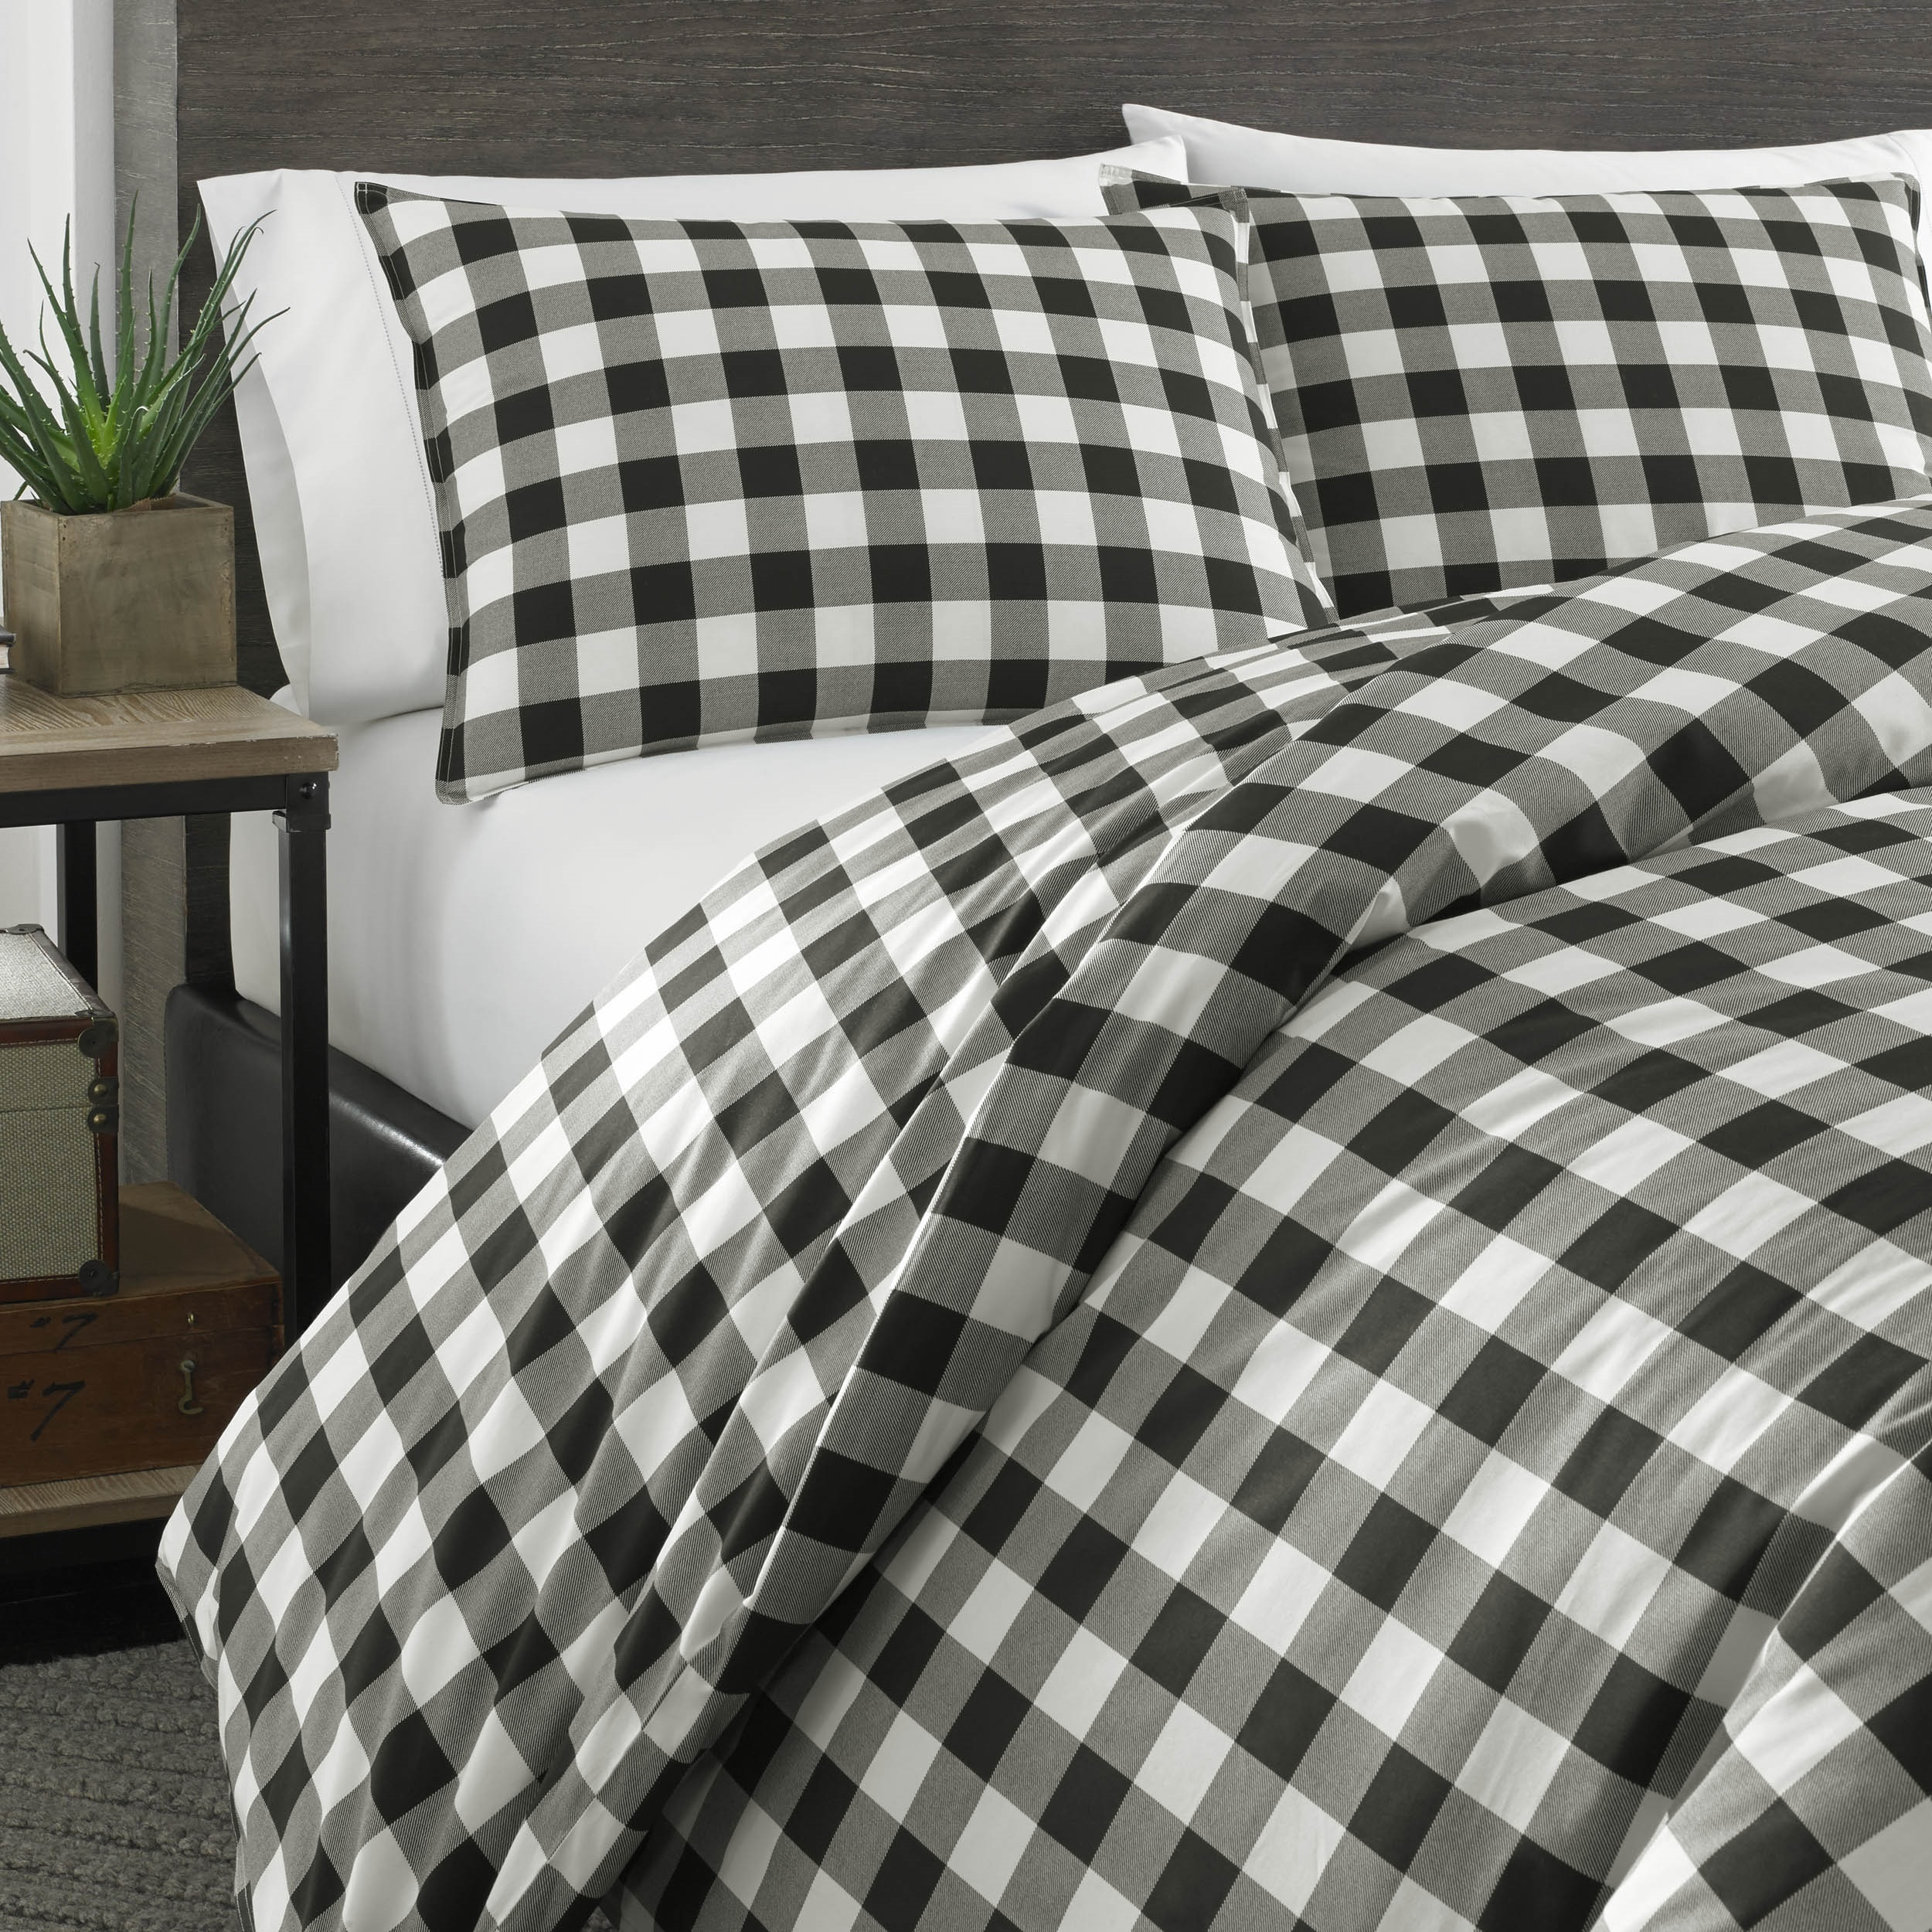 lodge ecrins set comforter black and cozy dramatic white duvet look